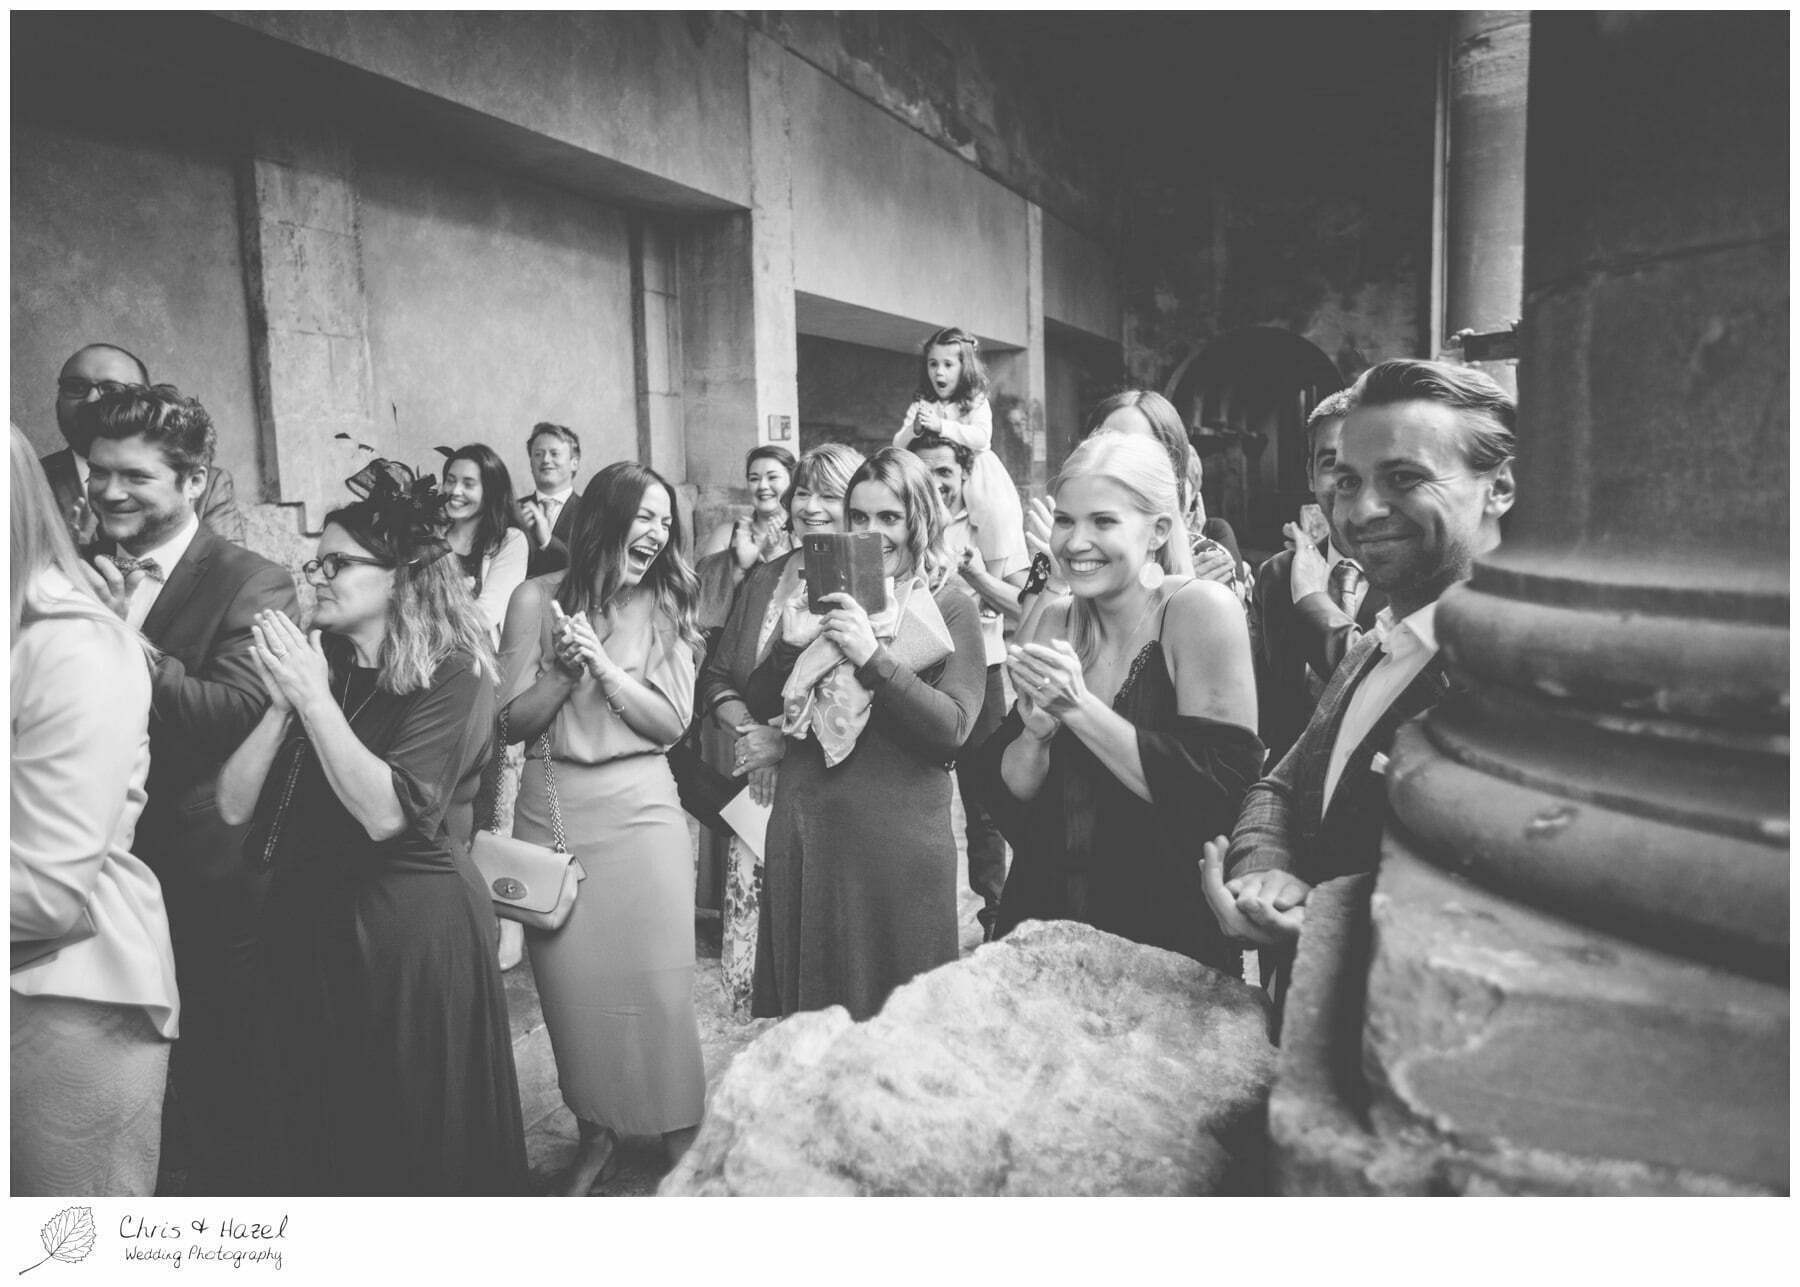 Weeding guests reaction, Ceremony Wedding Guests at Roman Baths Pump Rooms, The Roman Baths Wedding Photography, Roman Baths Wedding Photographer, Wedding in Bath, Bath Wedding Day, documentary wedding photography, Chris and Hazel Wedding Photography Bath, Andy Frost Sian Upson